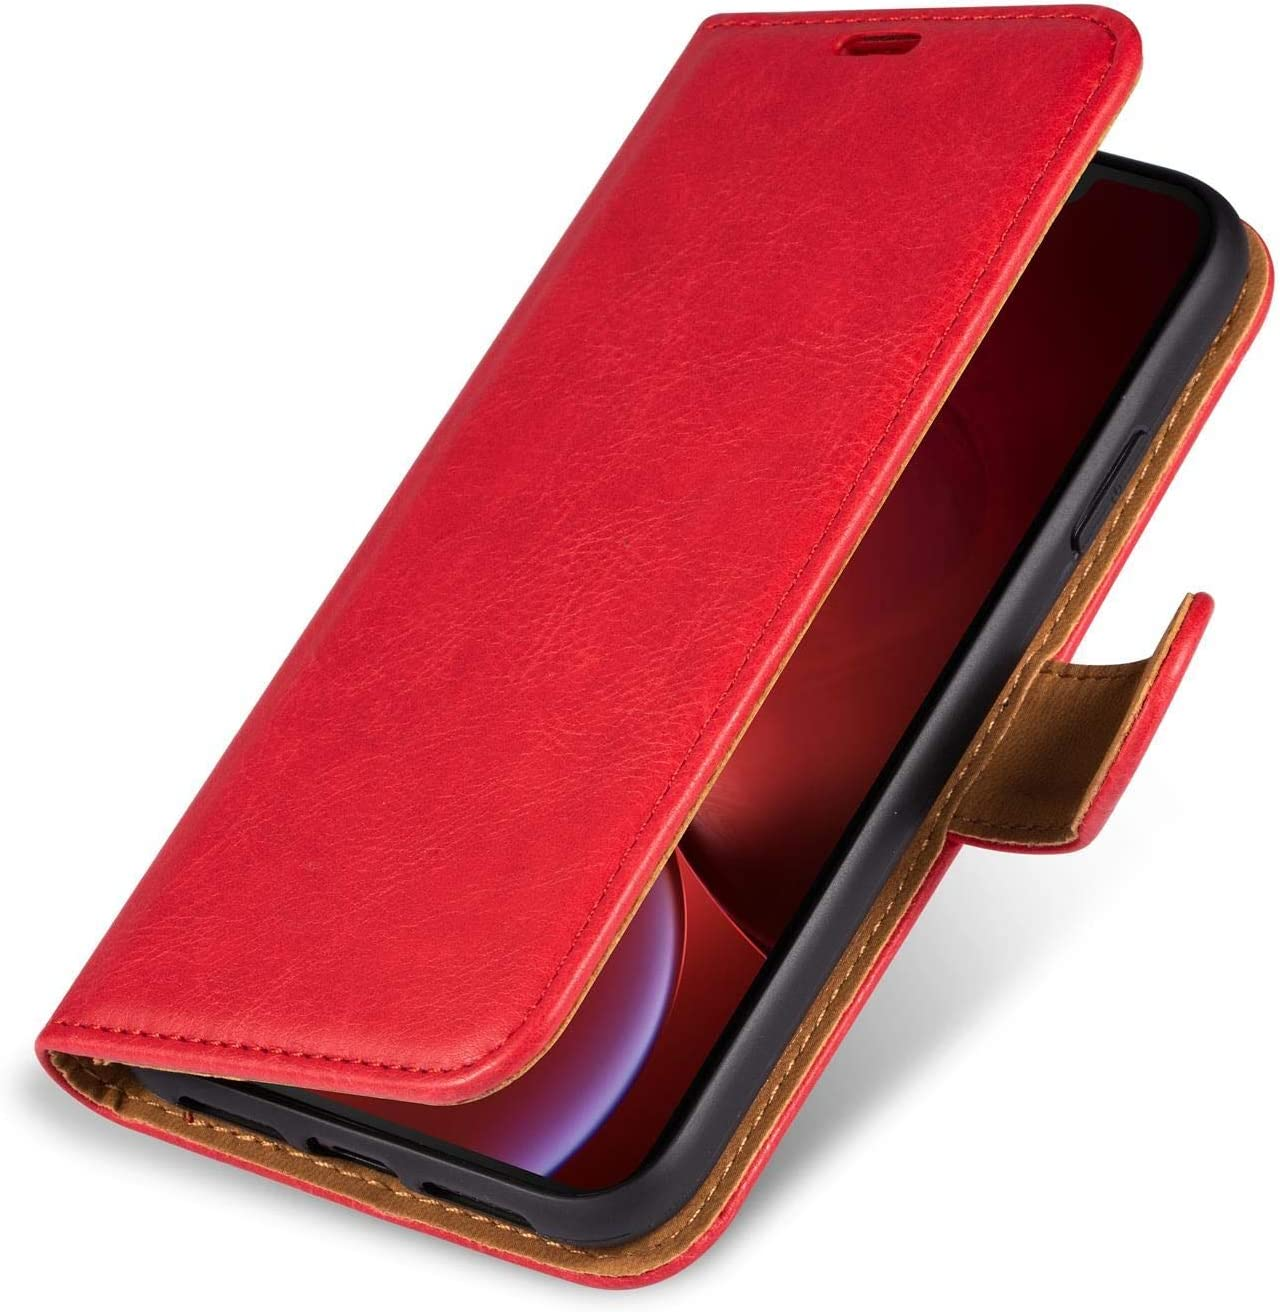 Case Collection Premium Leather Folio Cover for Samsung Galaxy A52 5G Case for Samsung A52 Phone Case and Kickstand Magnetic Closure Full Protection Book Design Wallet Flip with Card Slots 6.5